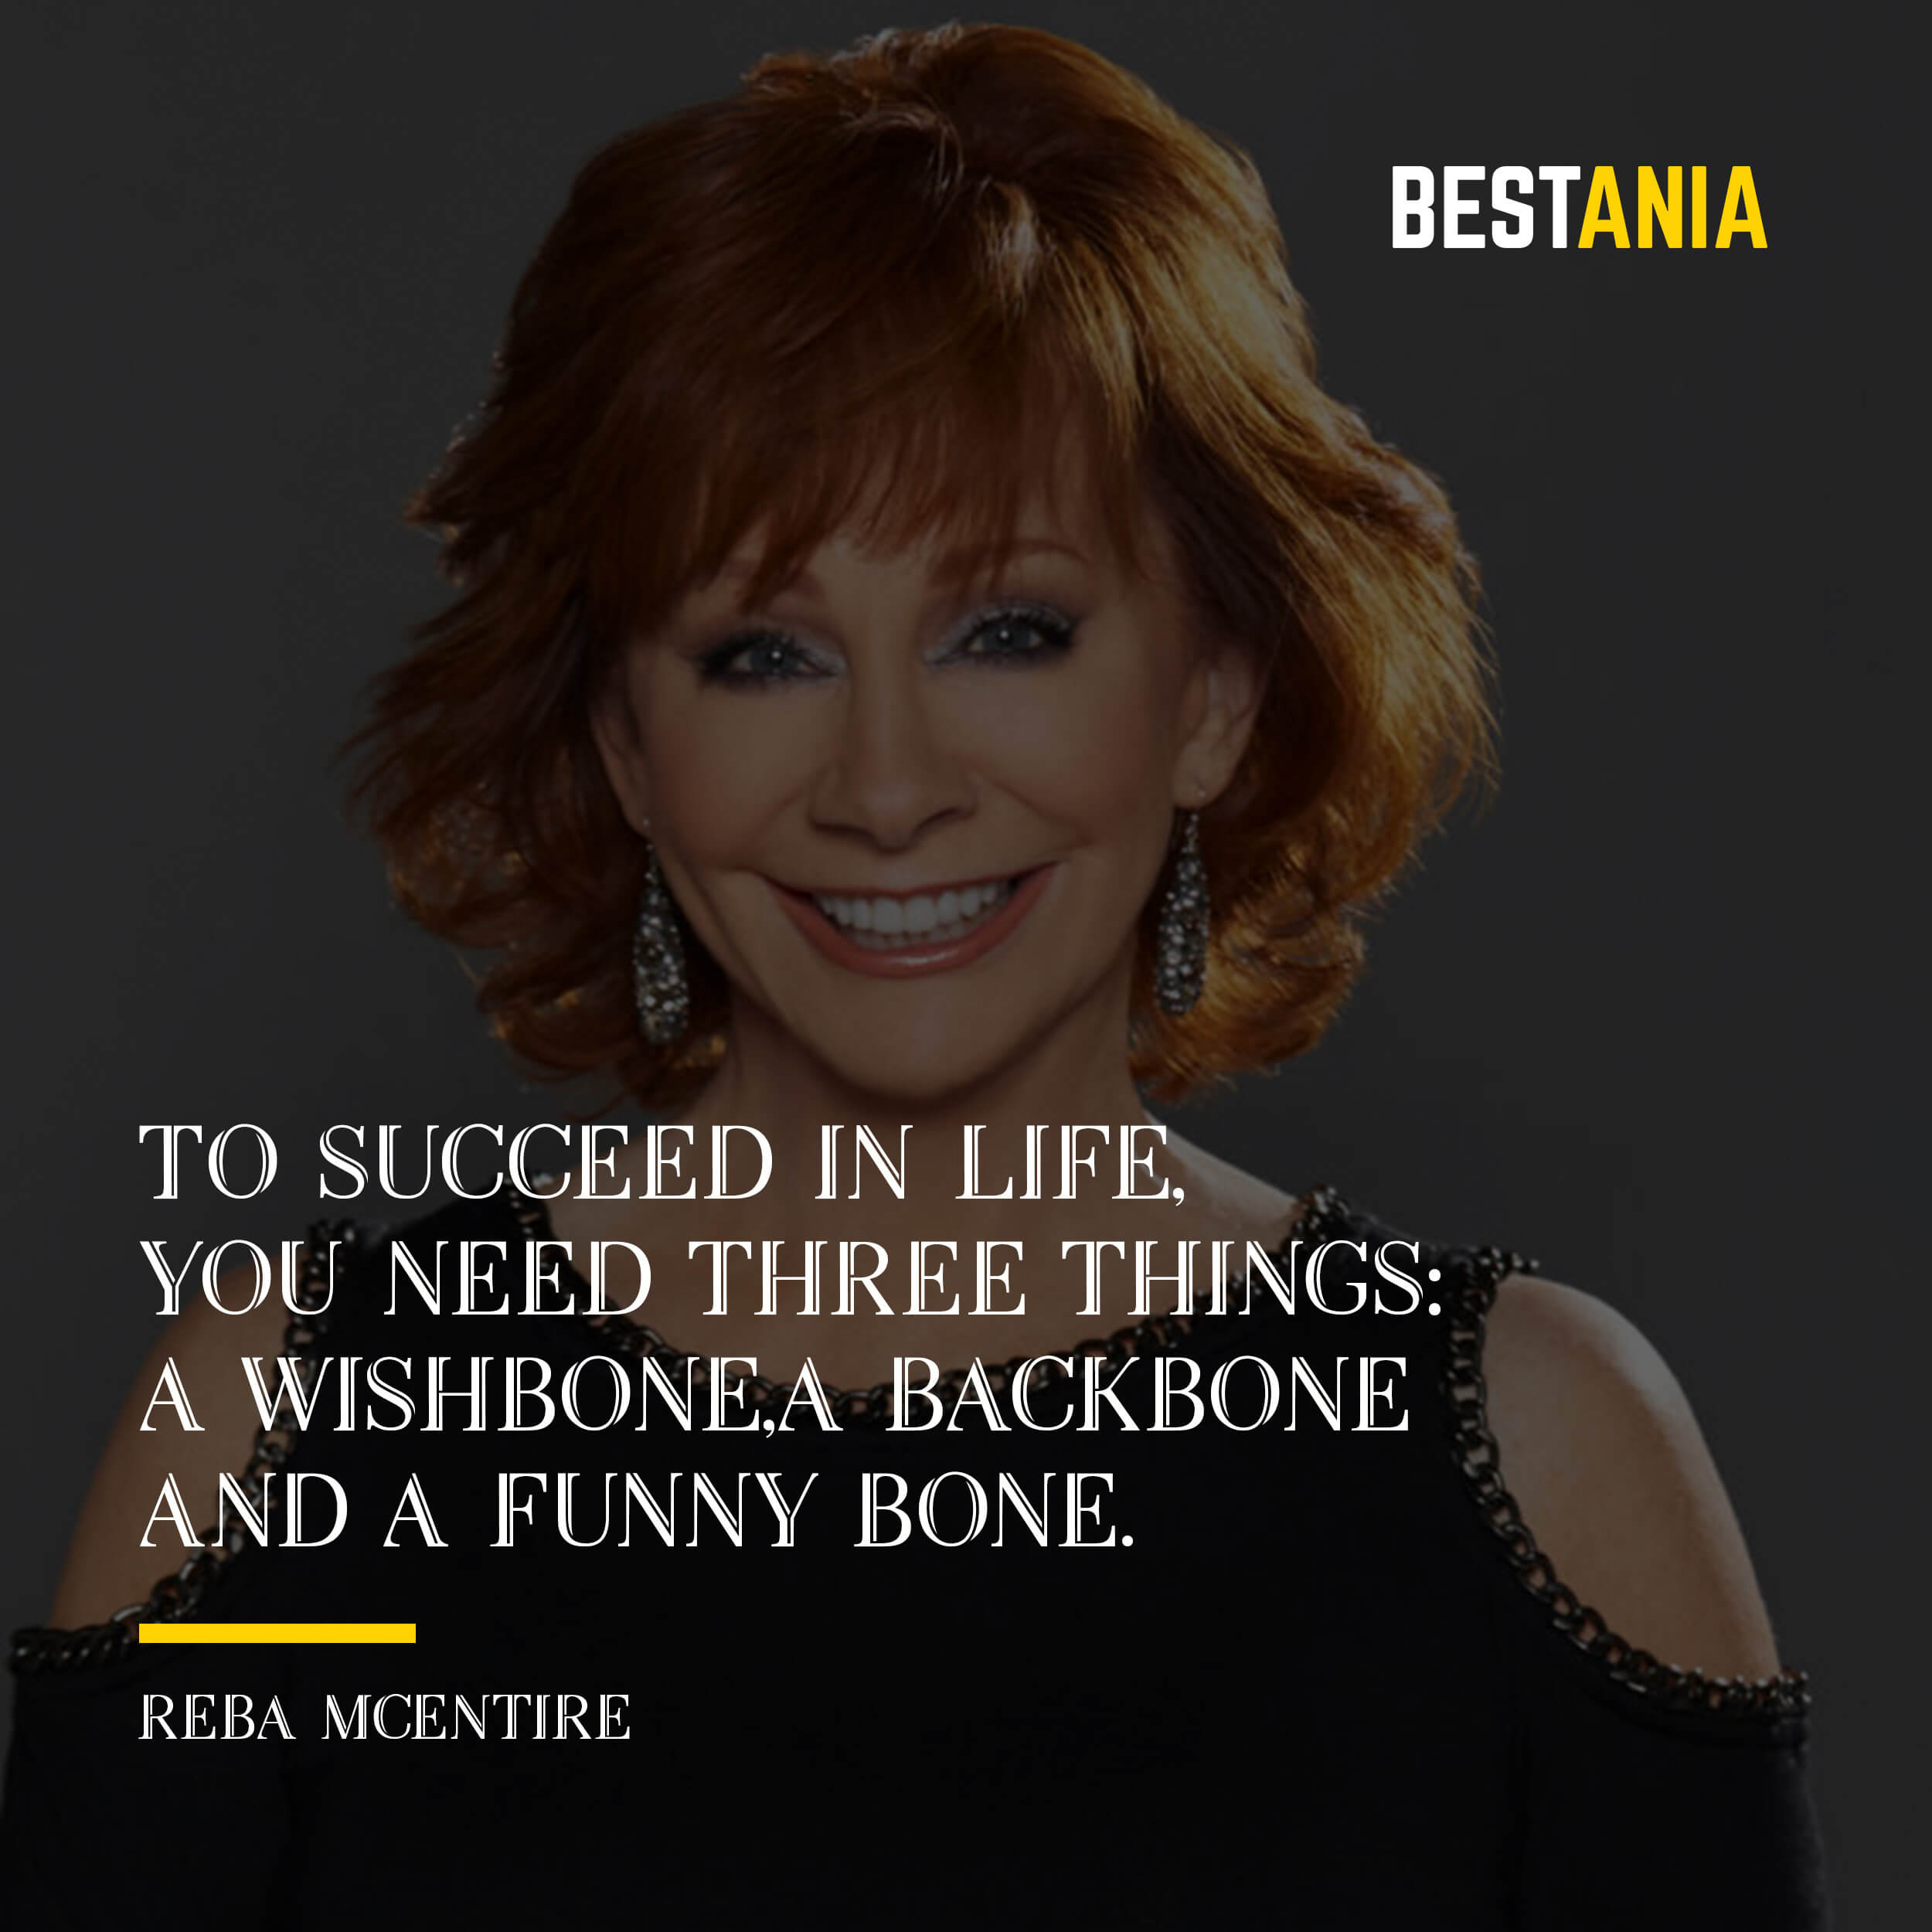 """TO SUCCEED IN LIFE, YOU NEED THREE THINGS: A WISHBONE, A BACKBONE, AND A FUNNY BONE.""  REBA MCENTIRE"